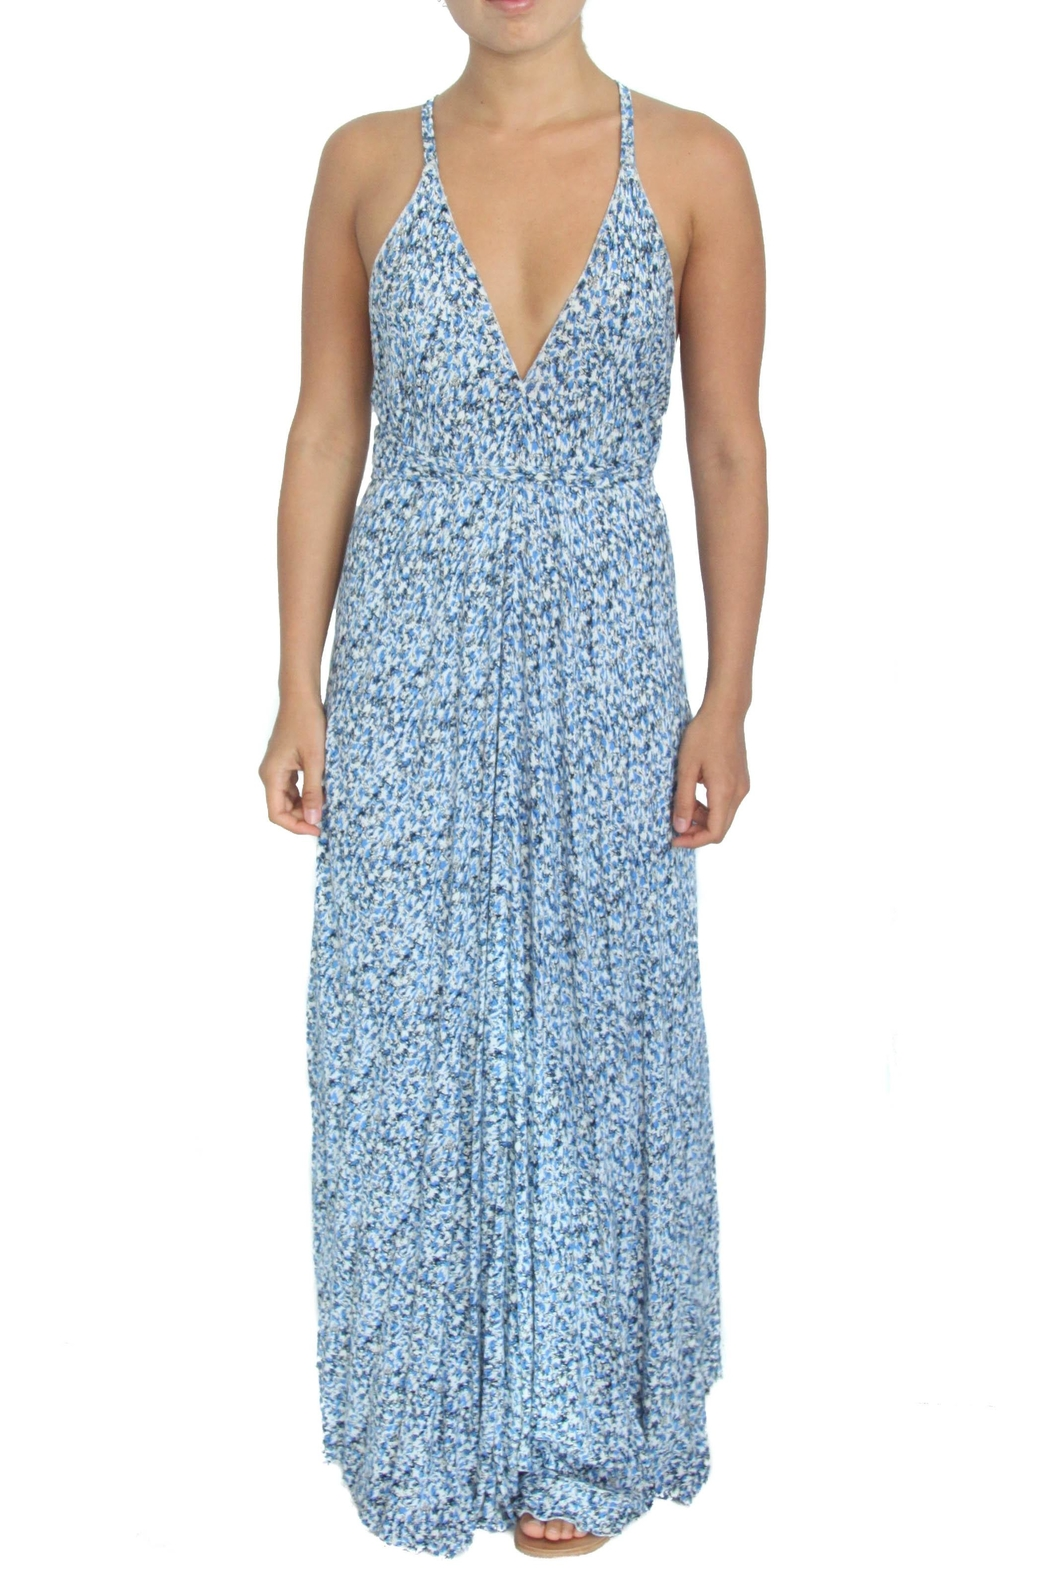 LOVEleigh Noosa Ultra Dress - Front Cropped Image